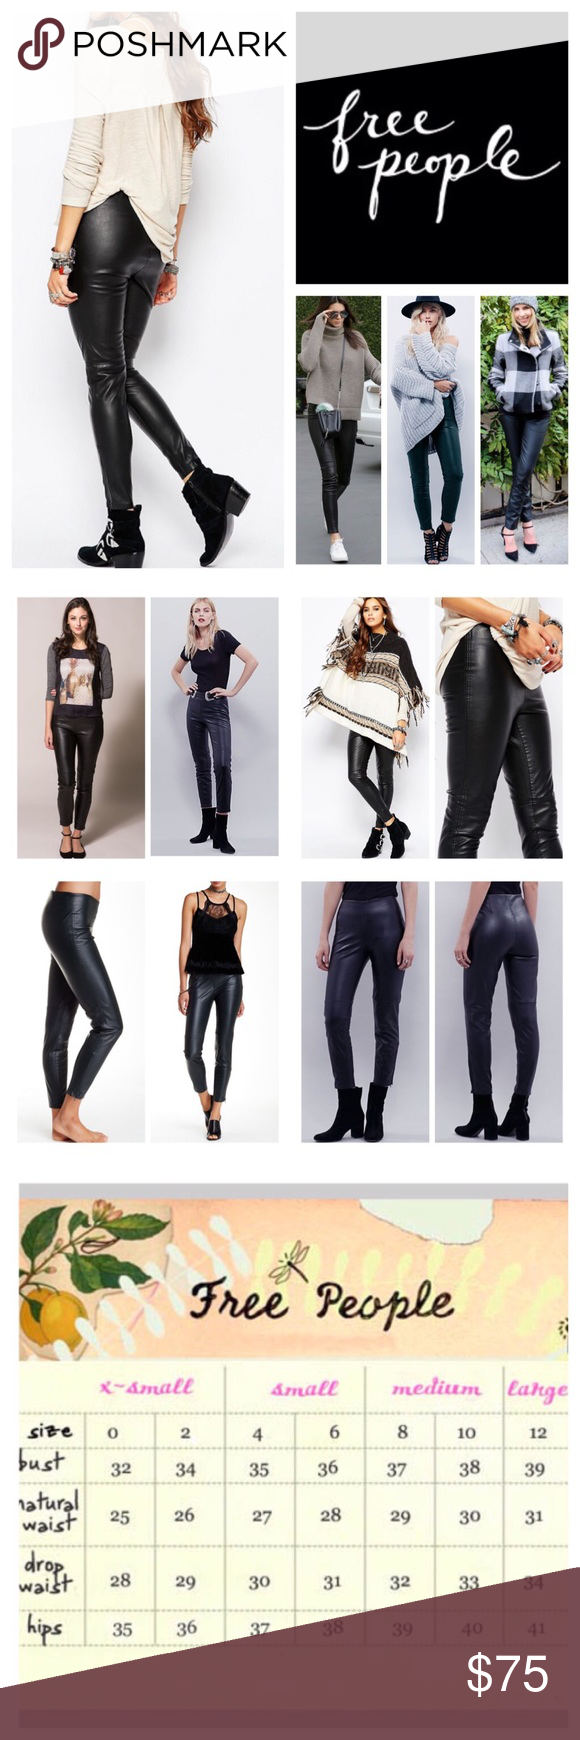 """Free People Black Vegan Leather Leggings.  NWT. Free People Black Vegan Leather Leggings, 100% polyurethane, machine washable, 26"""" elactercized waist which stretches up to 30"""" 8.5"""" front rise, 14"""" back rise, 27"""" inseam, 10"""" leg opening, 5.5"""" side ankle zip, authentic looking vegan leather leggings featuring a flat front and back pockets, elactercized waist, concealed side zip closure, seam detail, skinny fit,mmeasurements are approx.  NO TRADES Free People Pants Leggings"""